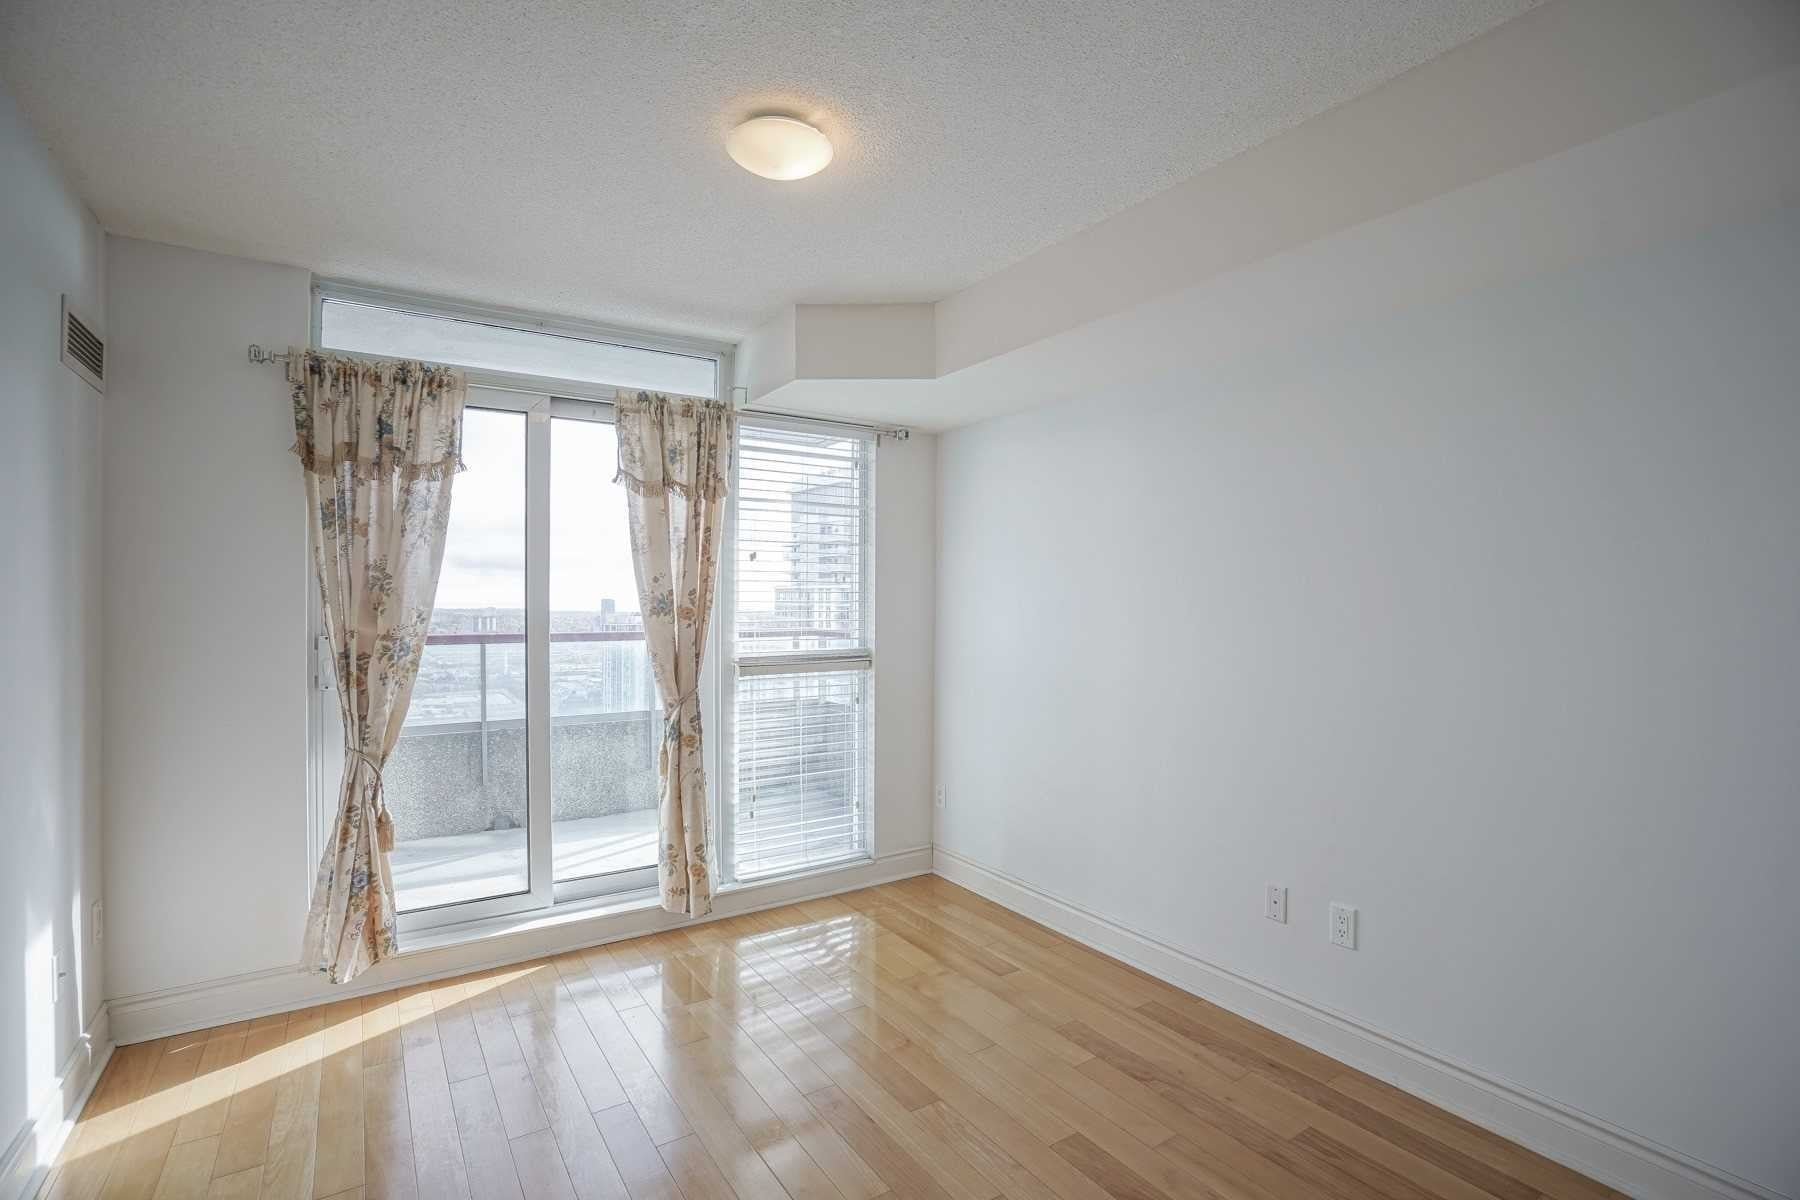 Apartment for rent at 60 Brian Harrison Wy Unit 3208 Toronto Ontario - MLS: E4851398